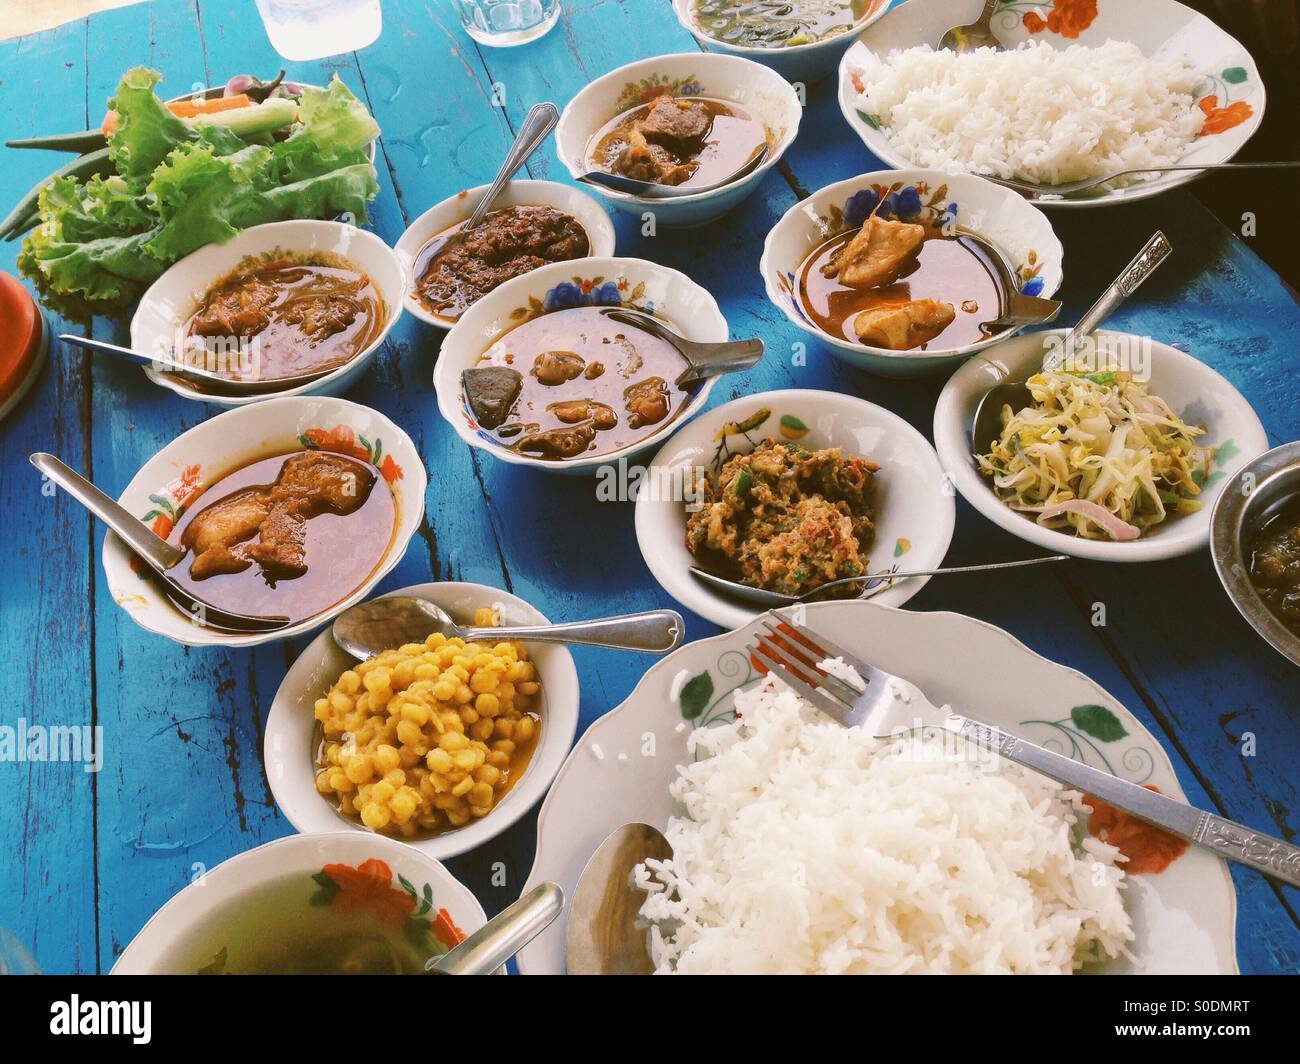 Traditional lunch in Burma. - Stock Image